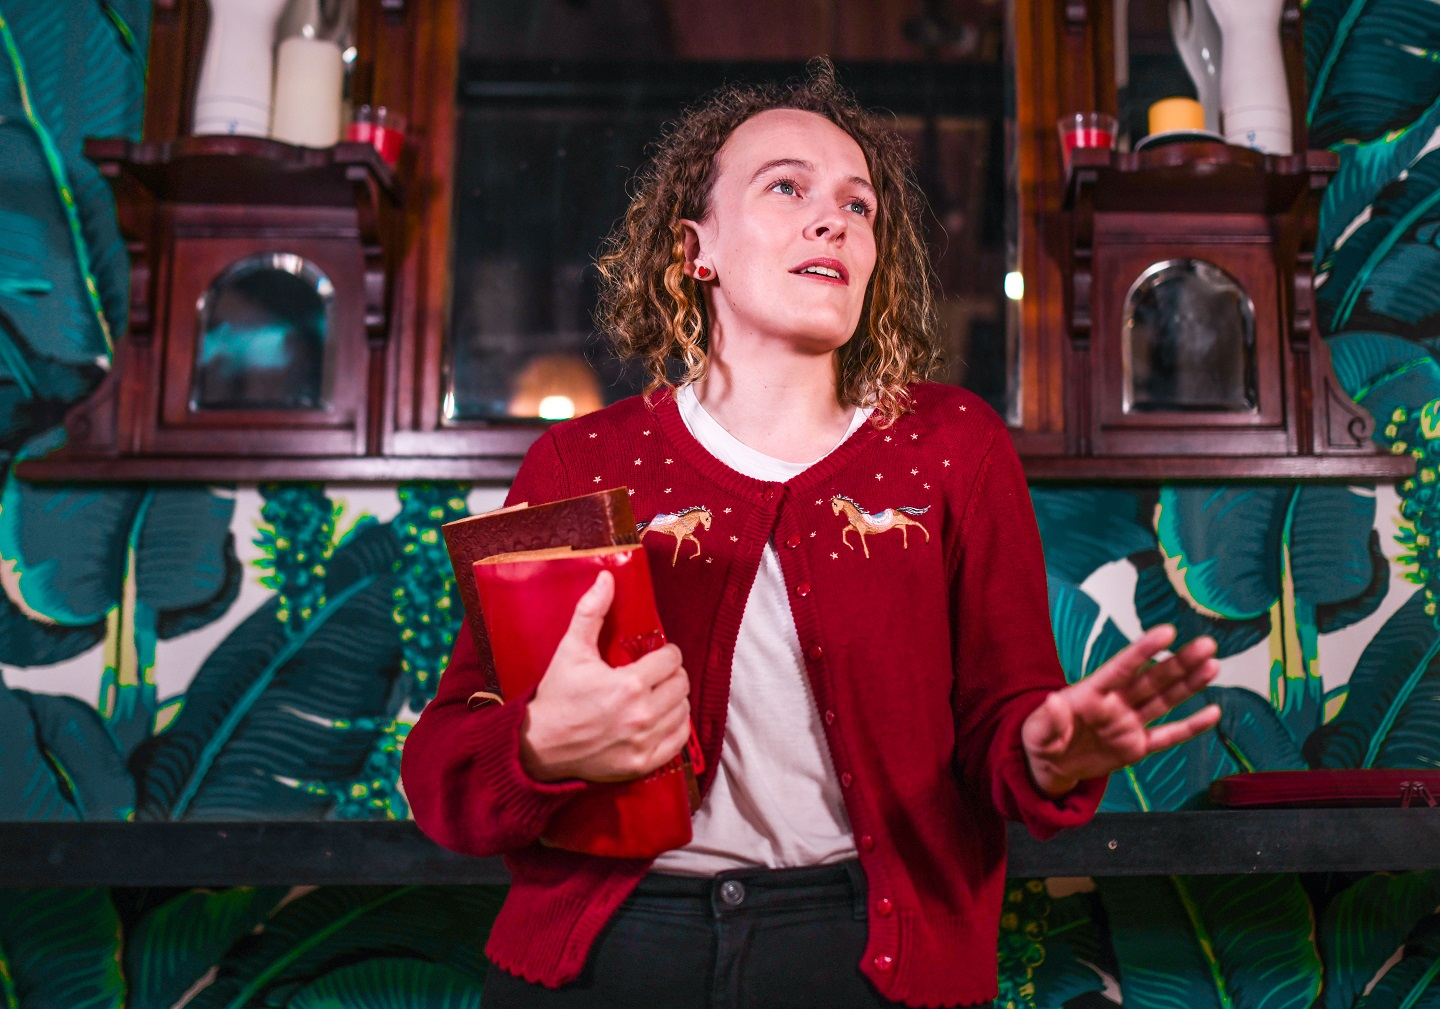 Caitlin Overton, Master of Theatre (Directing) student. Photo by Giulia McGauran.